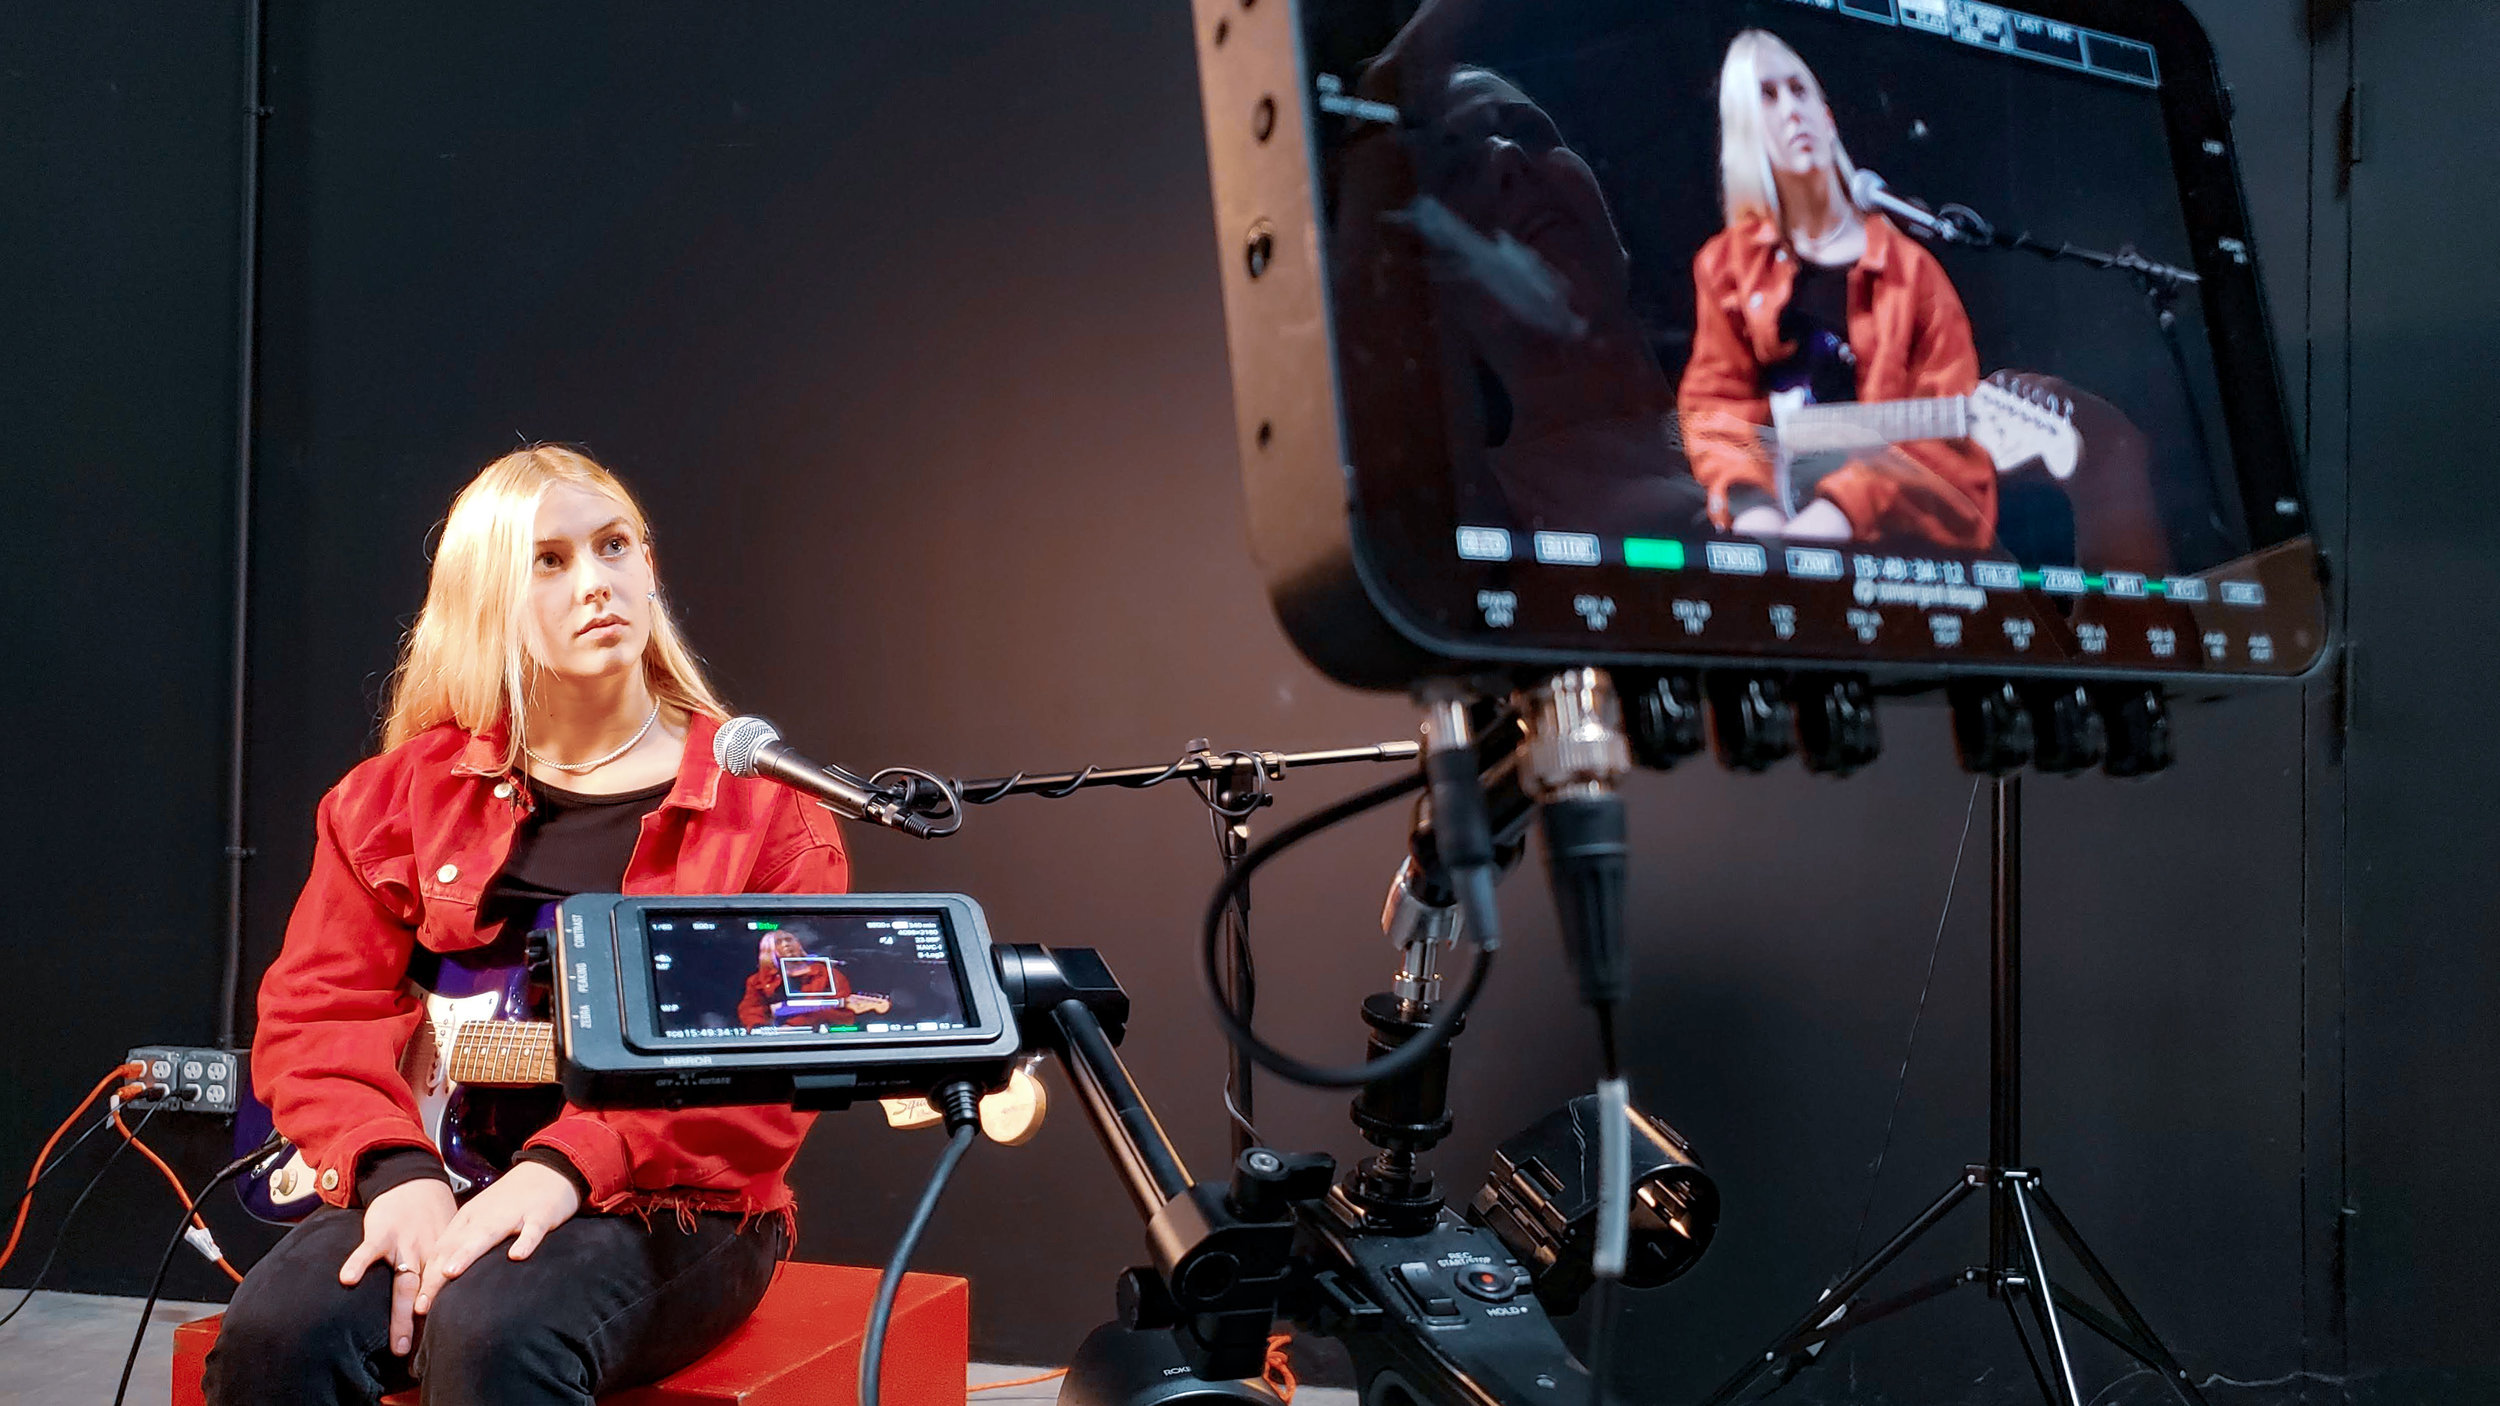 Reel Submissions - For performing arts college applicants ready to outshine the competition with professional pre-screen videos & on-camera coaching